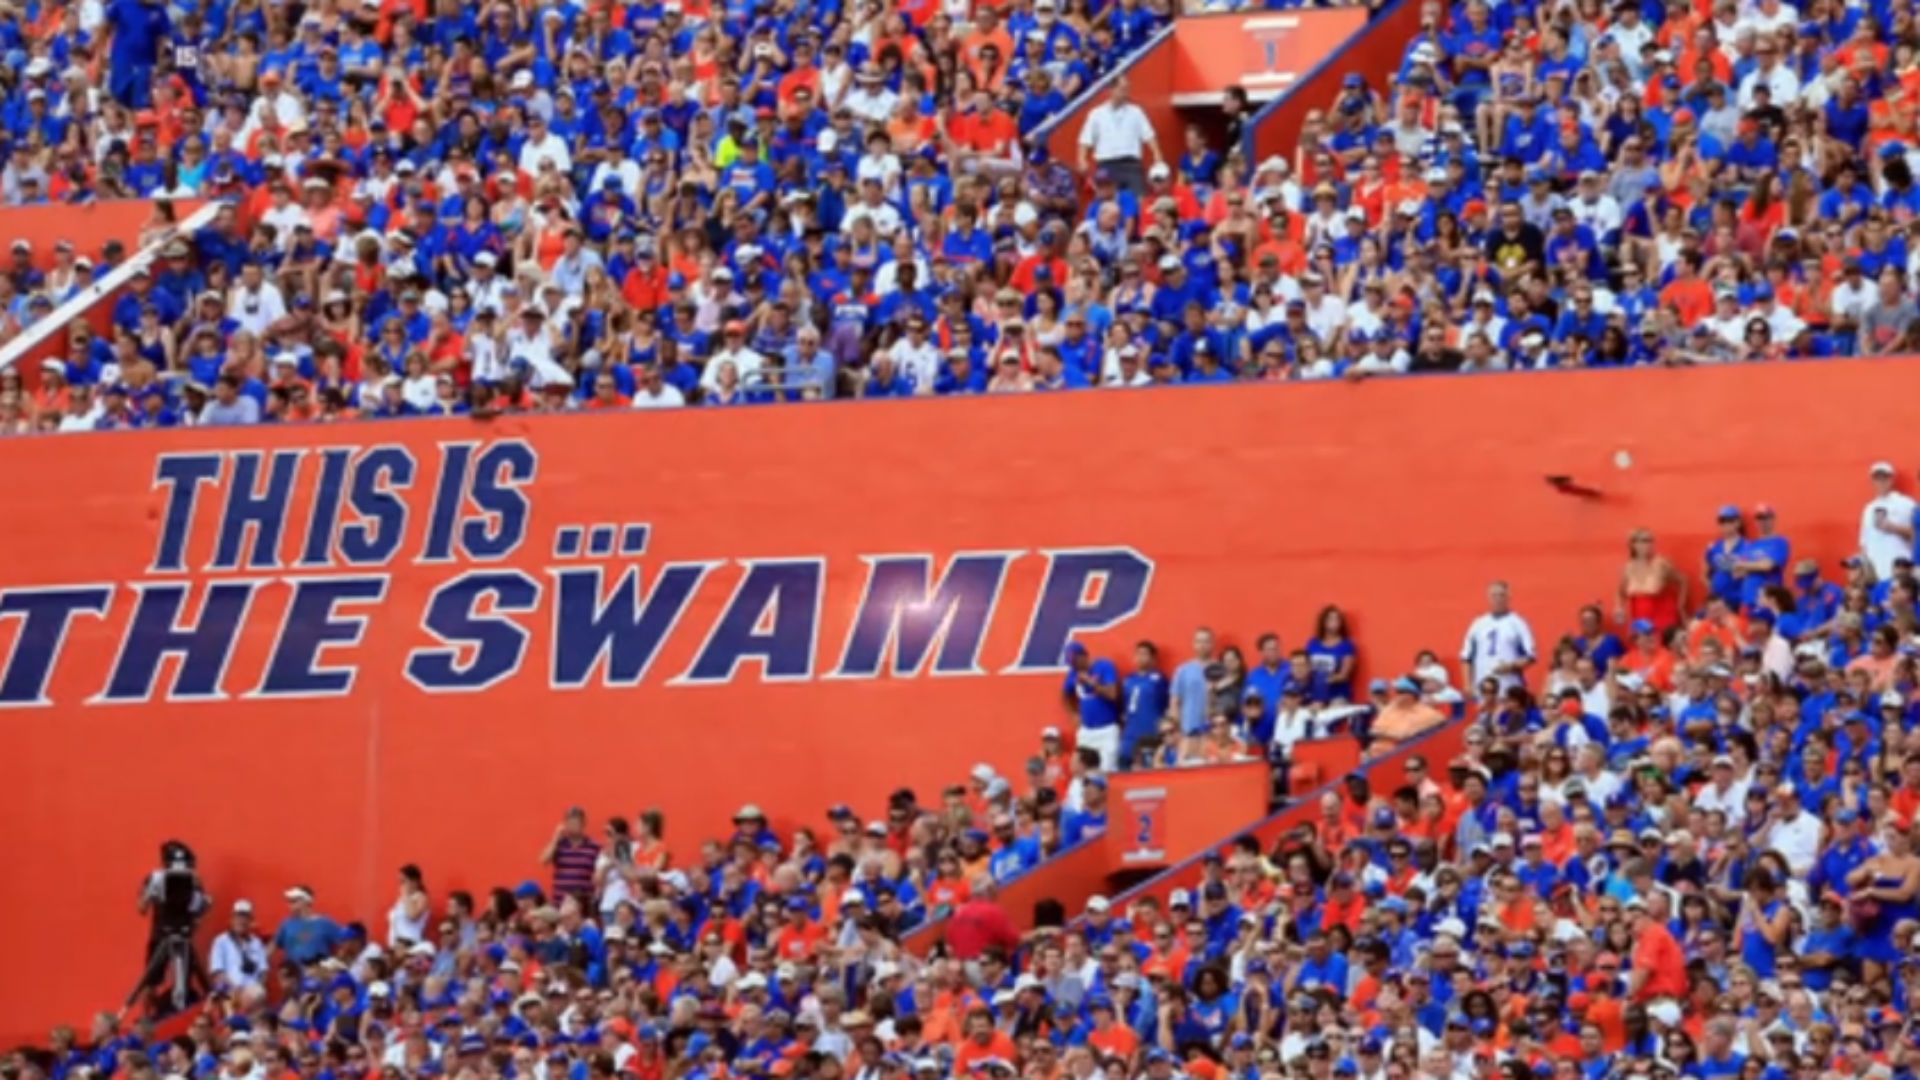 Florida hype video blends history with new regime